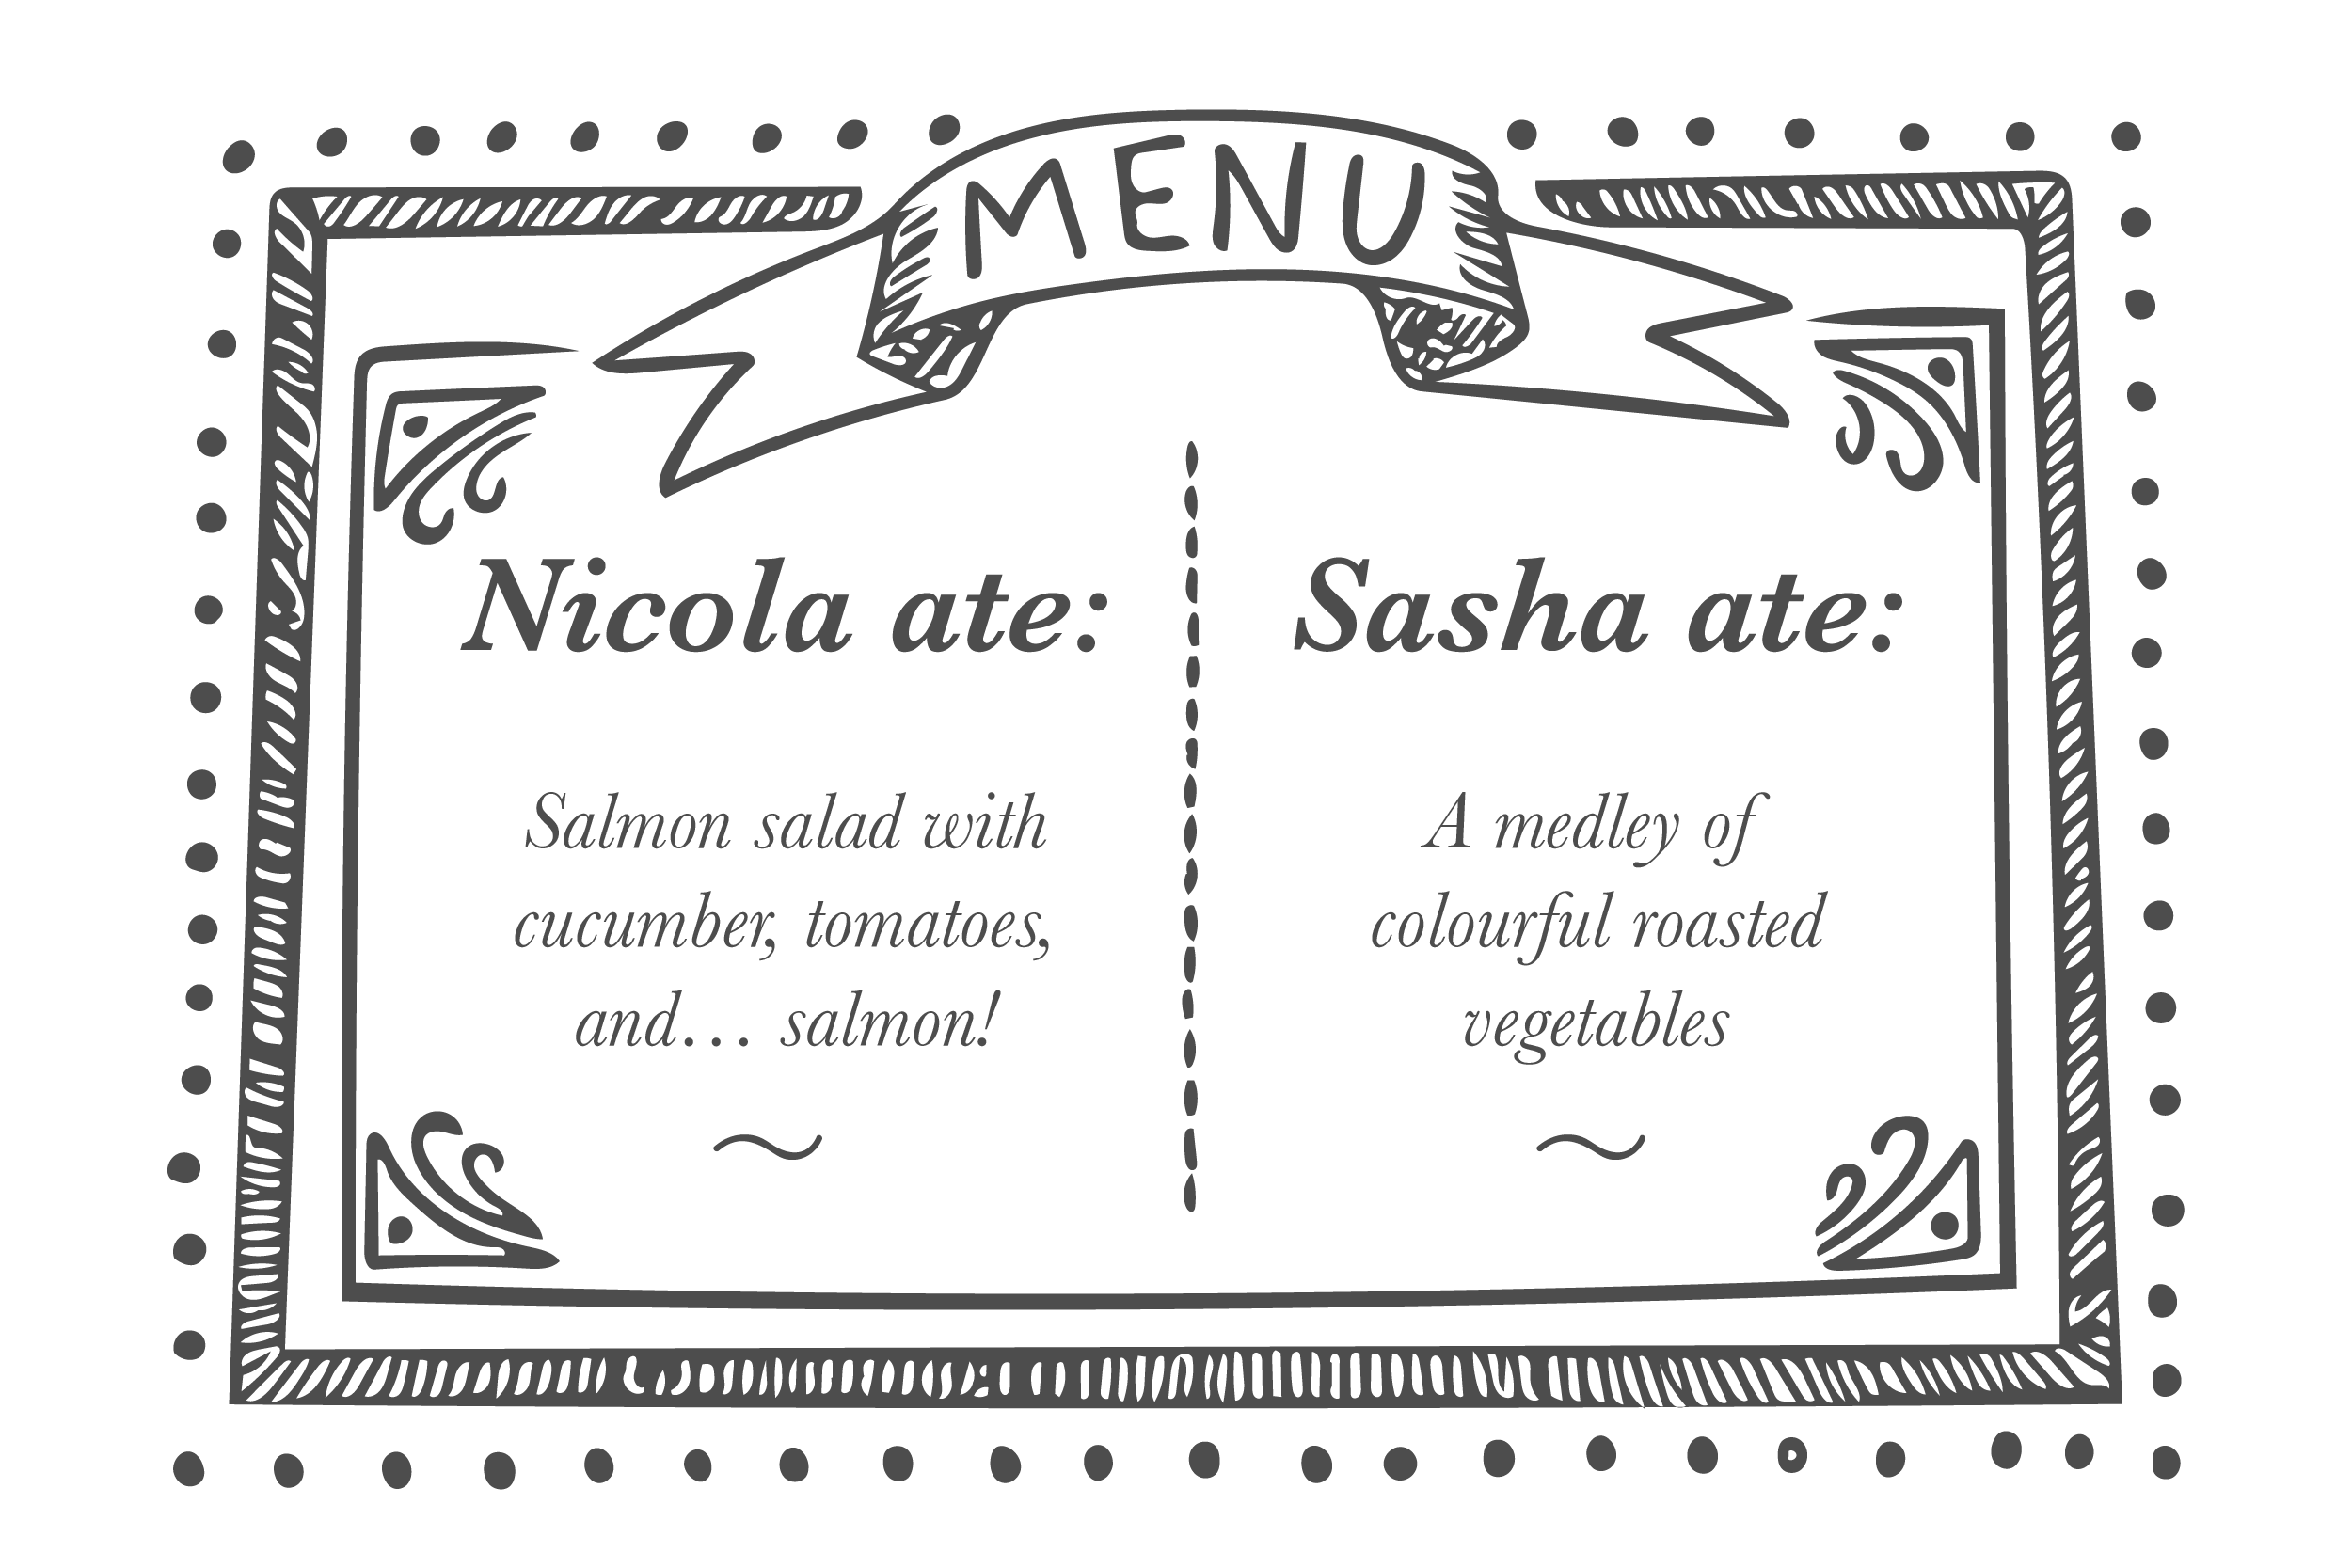 Nicola's lunch menu